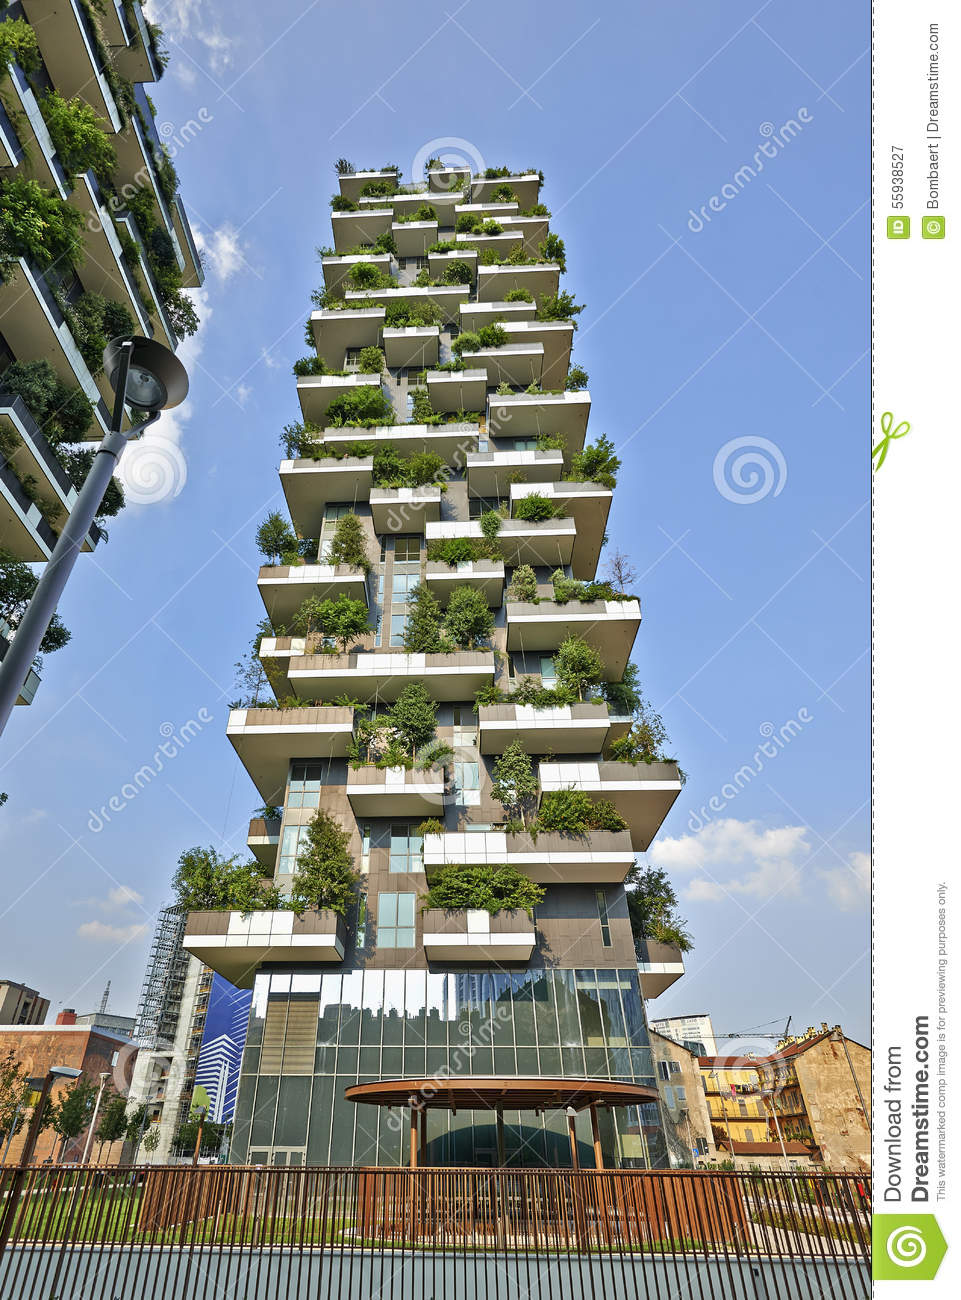 Vertical Forest Apartment Building In The Porta Nuova Area ... | 961 x 1300 jpeg 236kB